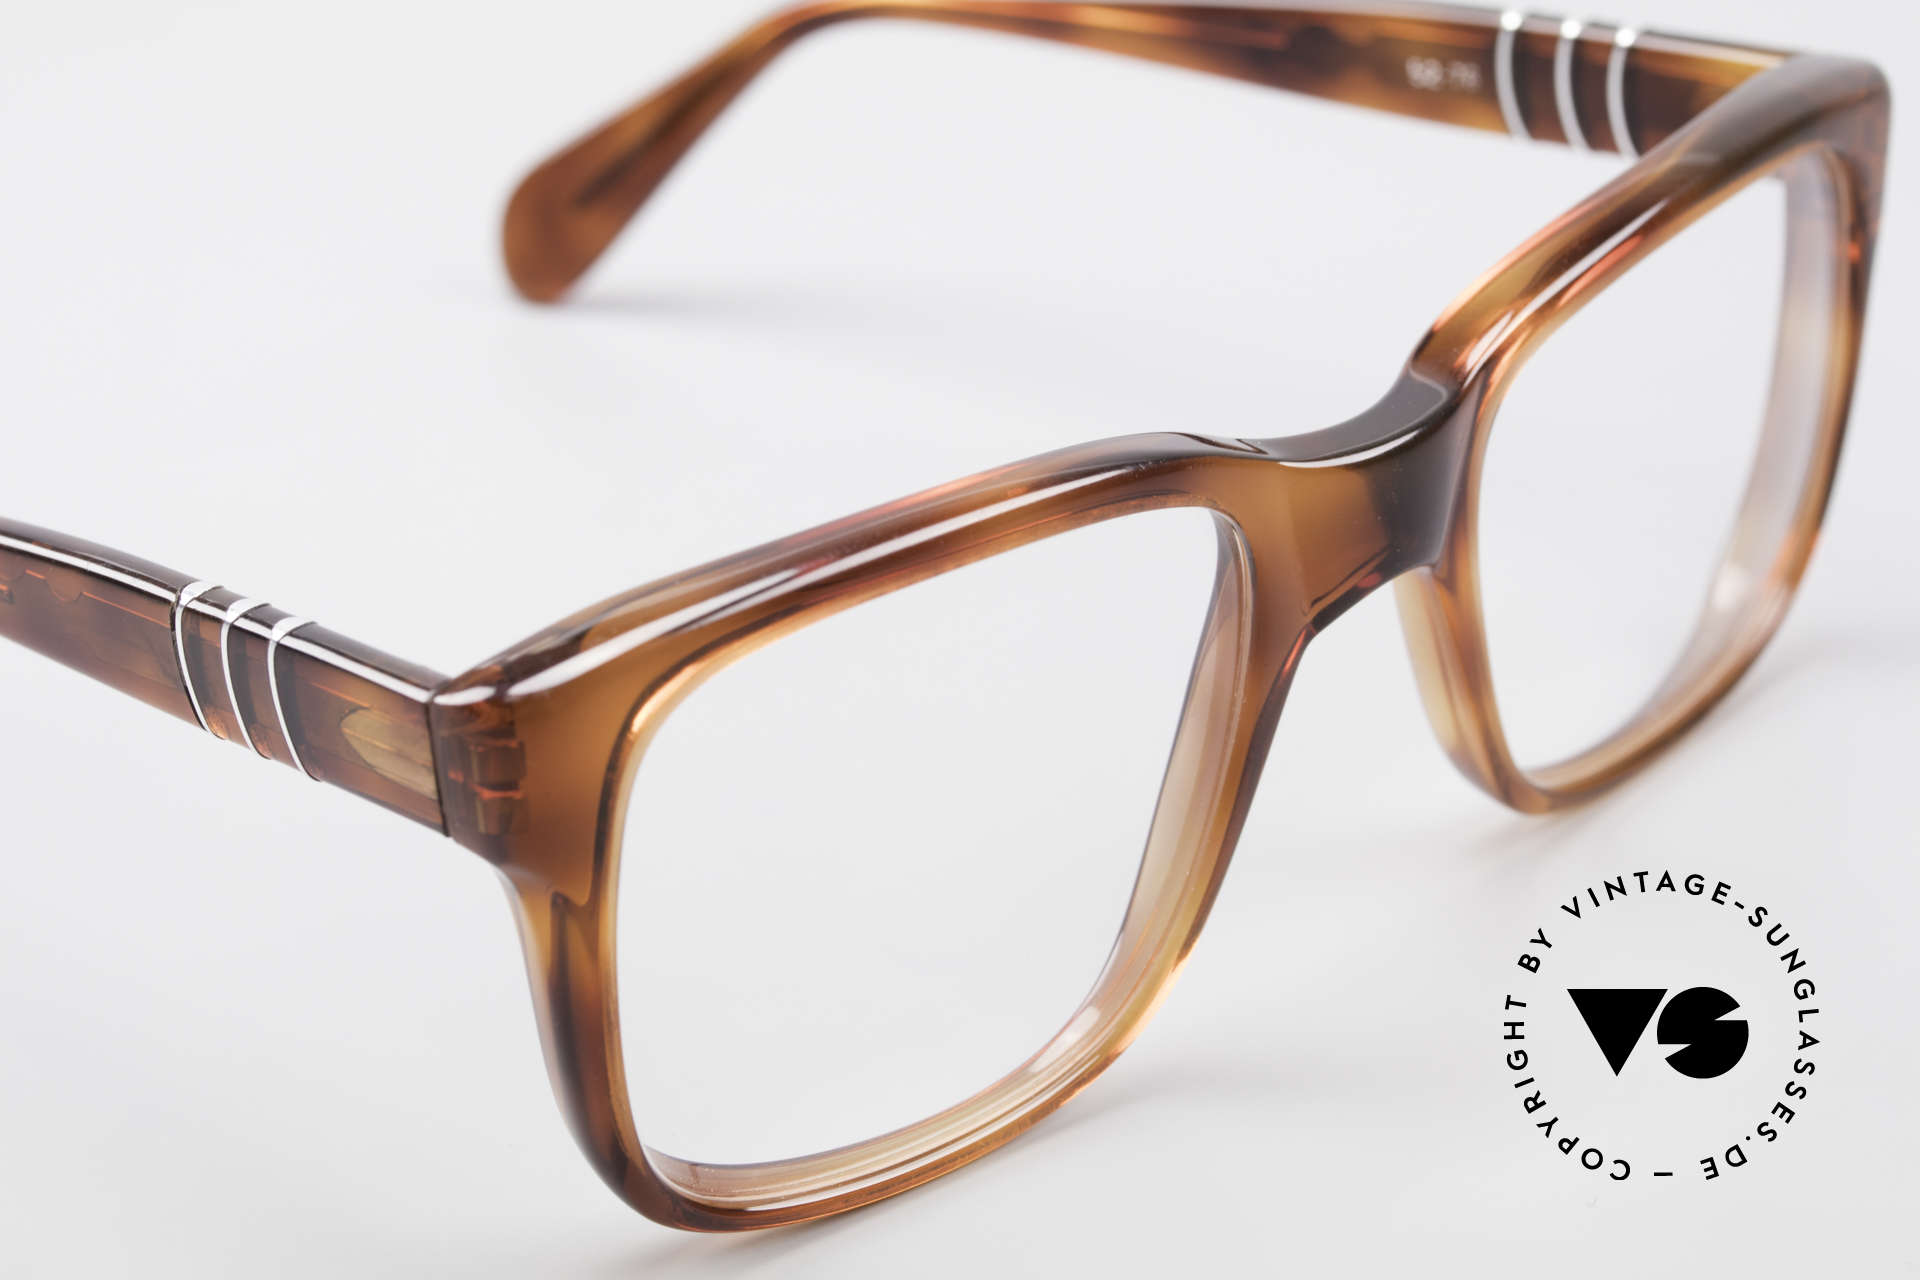 Persol 58150 Ratti Old School Vintage Eyeglasses, NO retro eyeglasses, but a rare 30 years old ORIGINAL, Made for Men